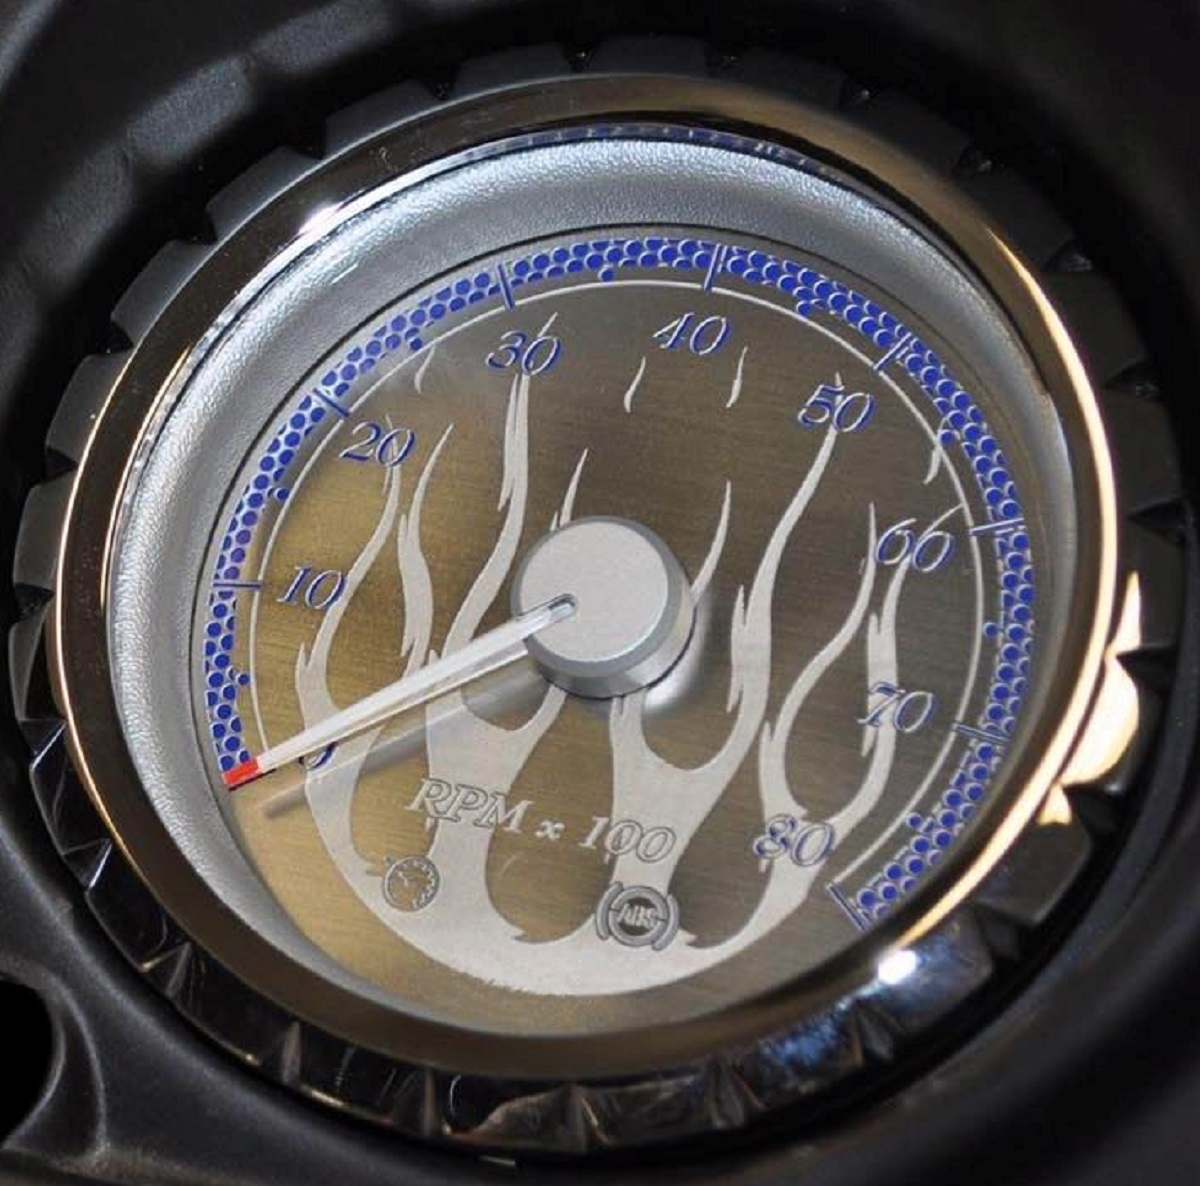 Stainless steel face: with flames, blue background, and billet bezels.